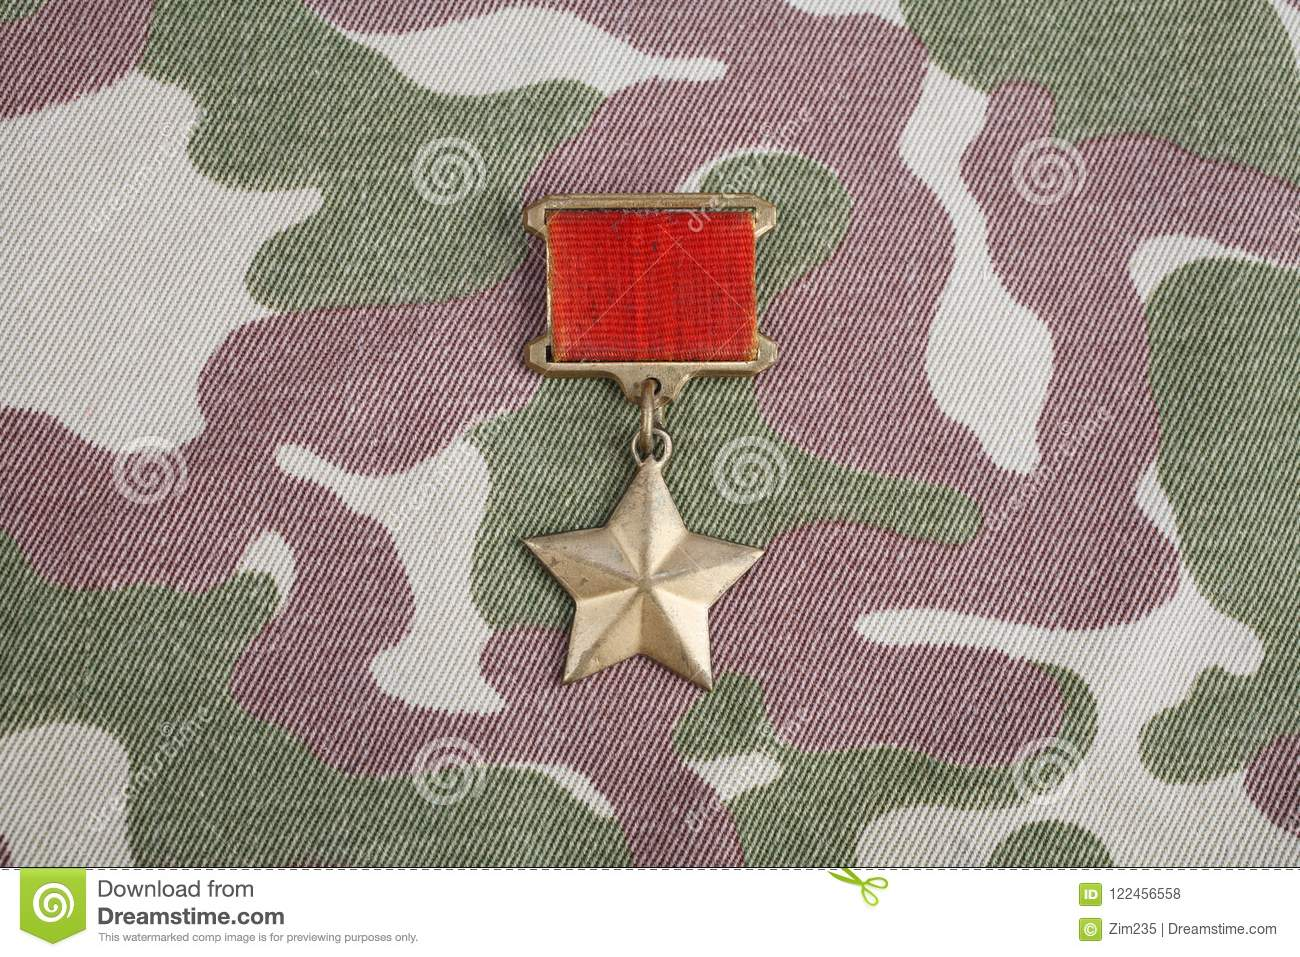 The title of Hero of the Soviet Union was awarded posthumously to General Karbyshev (28 fe 64